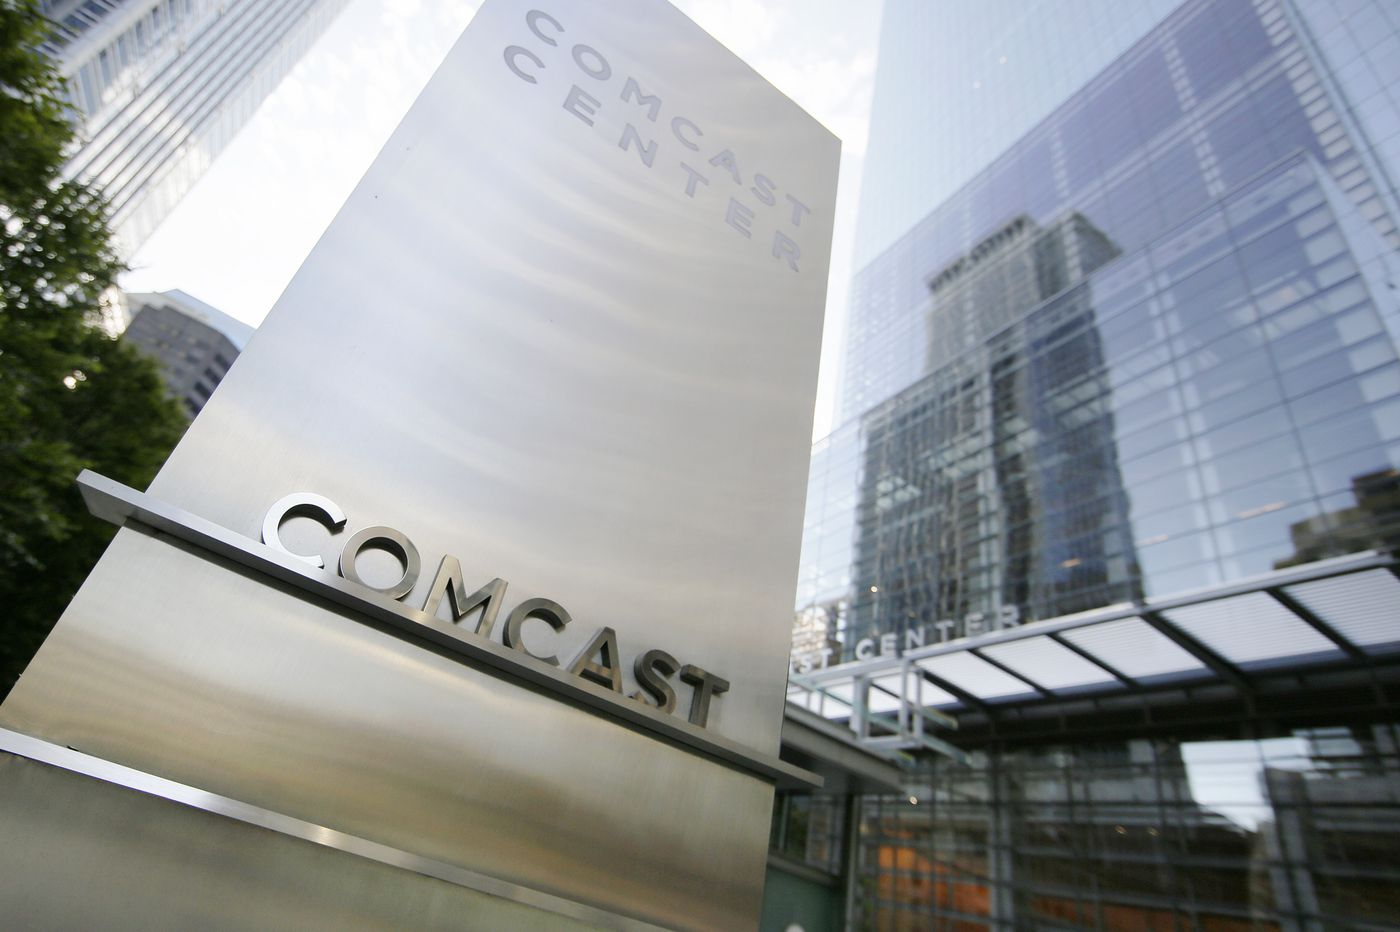 Comcast among U.S. companies taking a tough line on campaign donations after election challenge, Capitol takeover